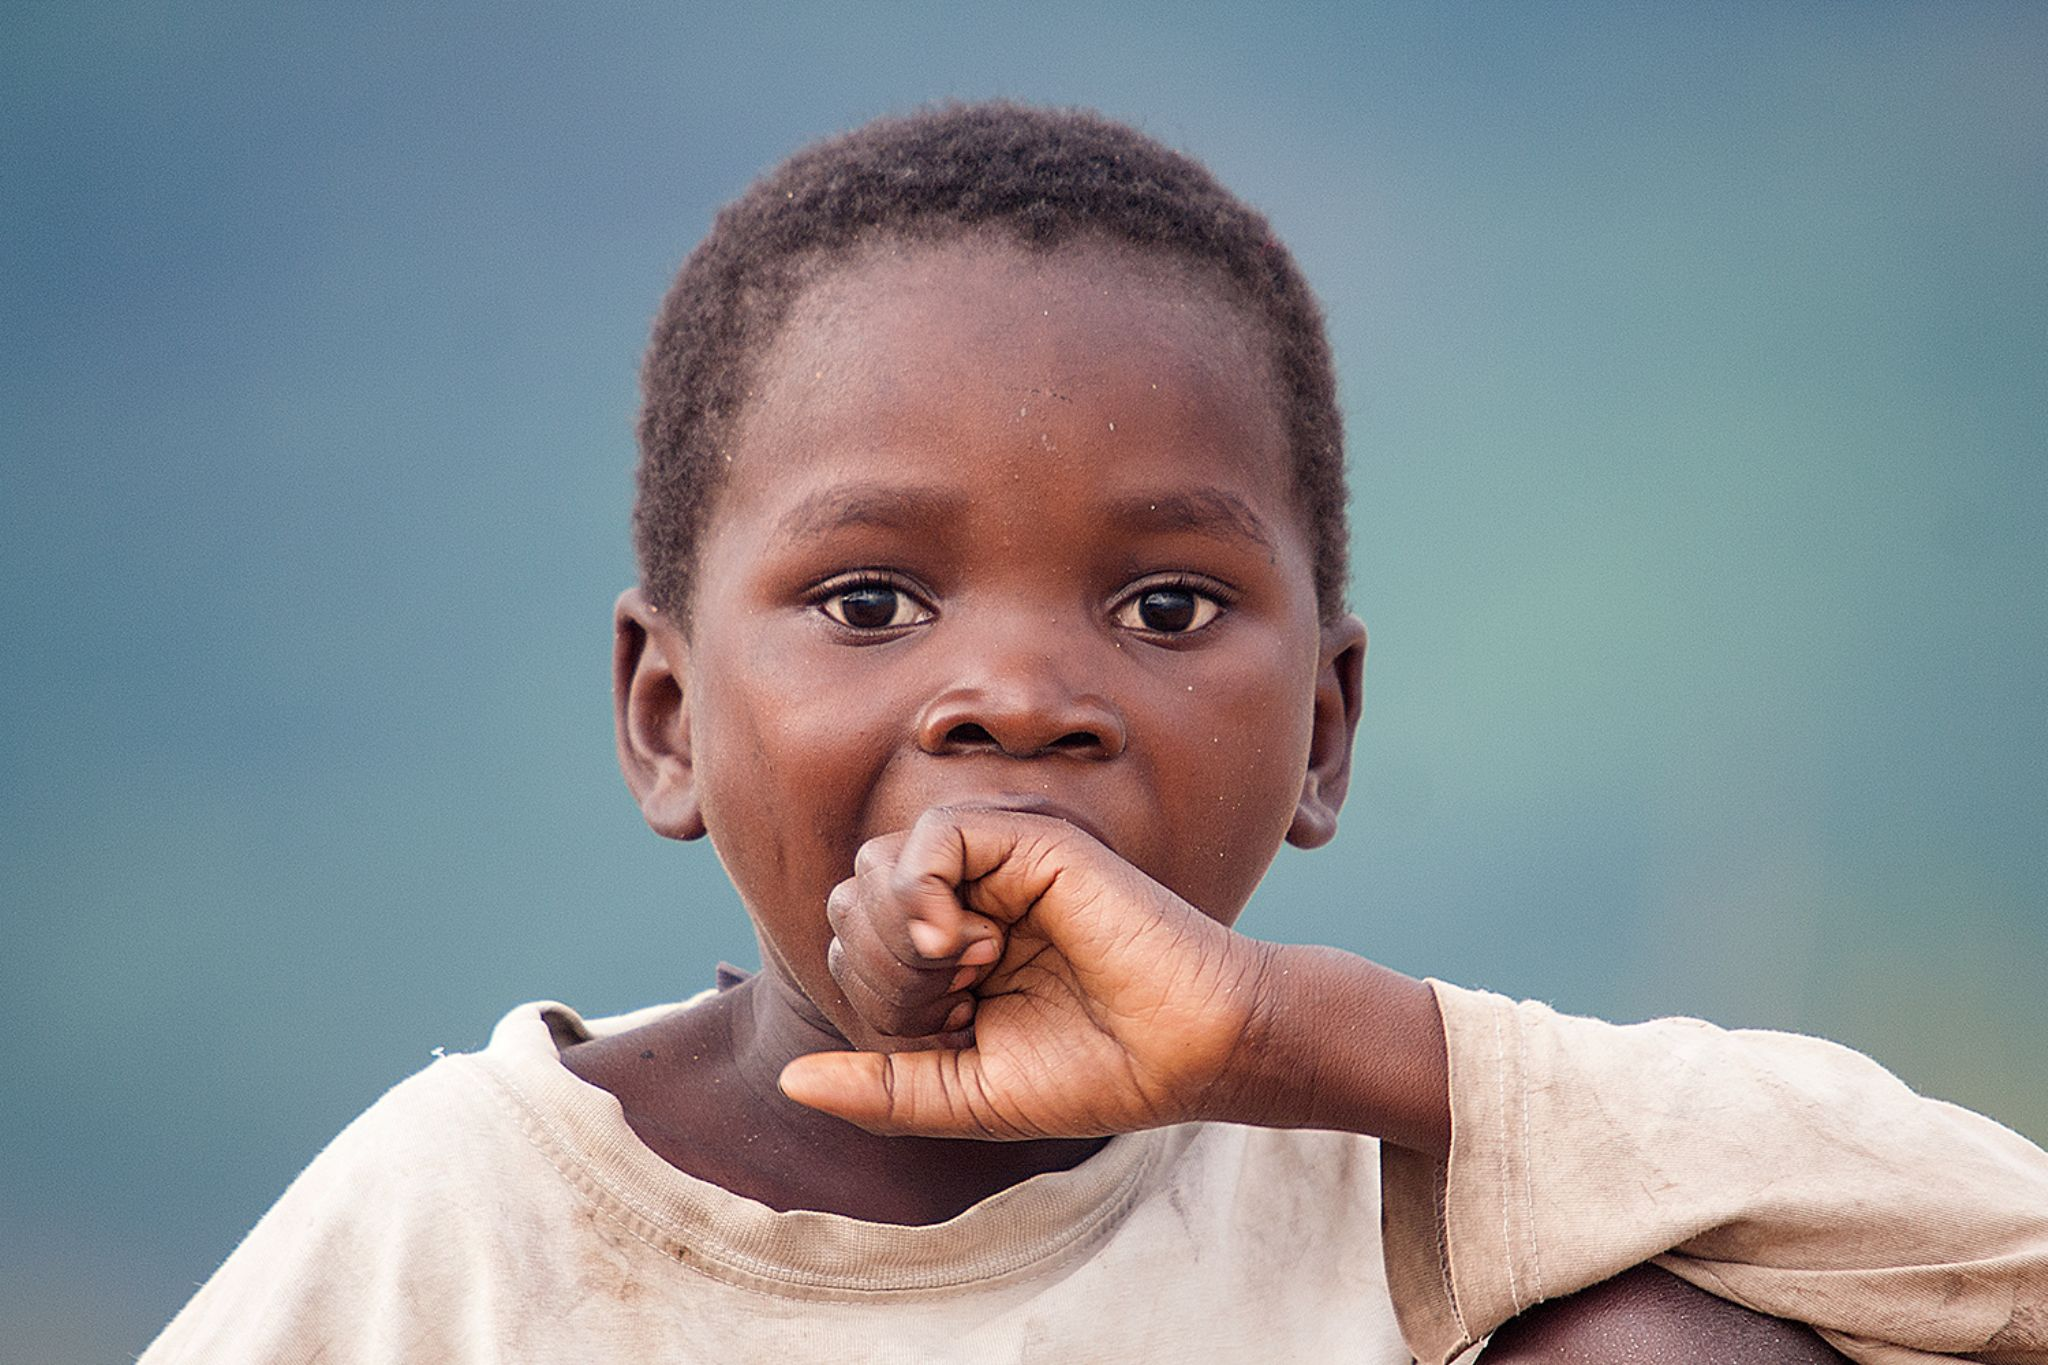 Boy by Ed Peeters Photography